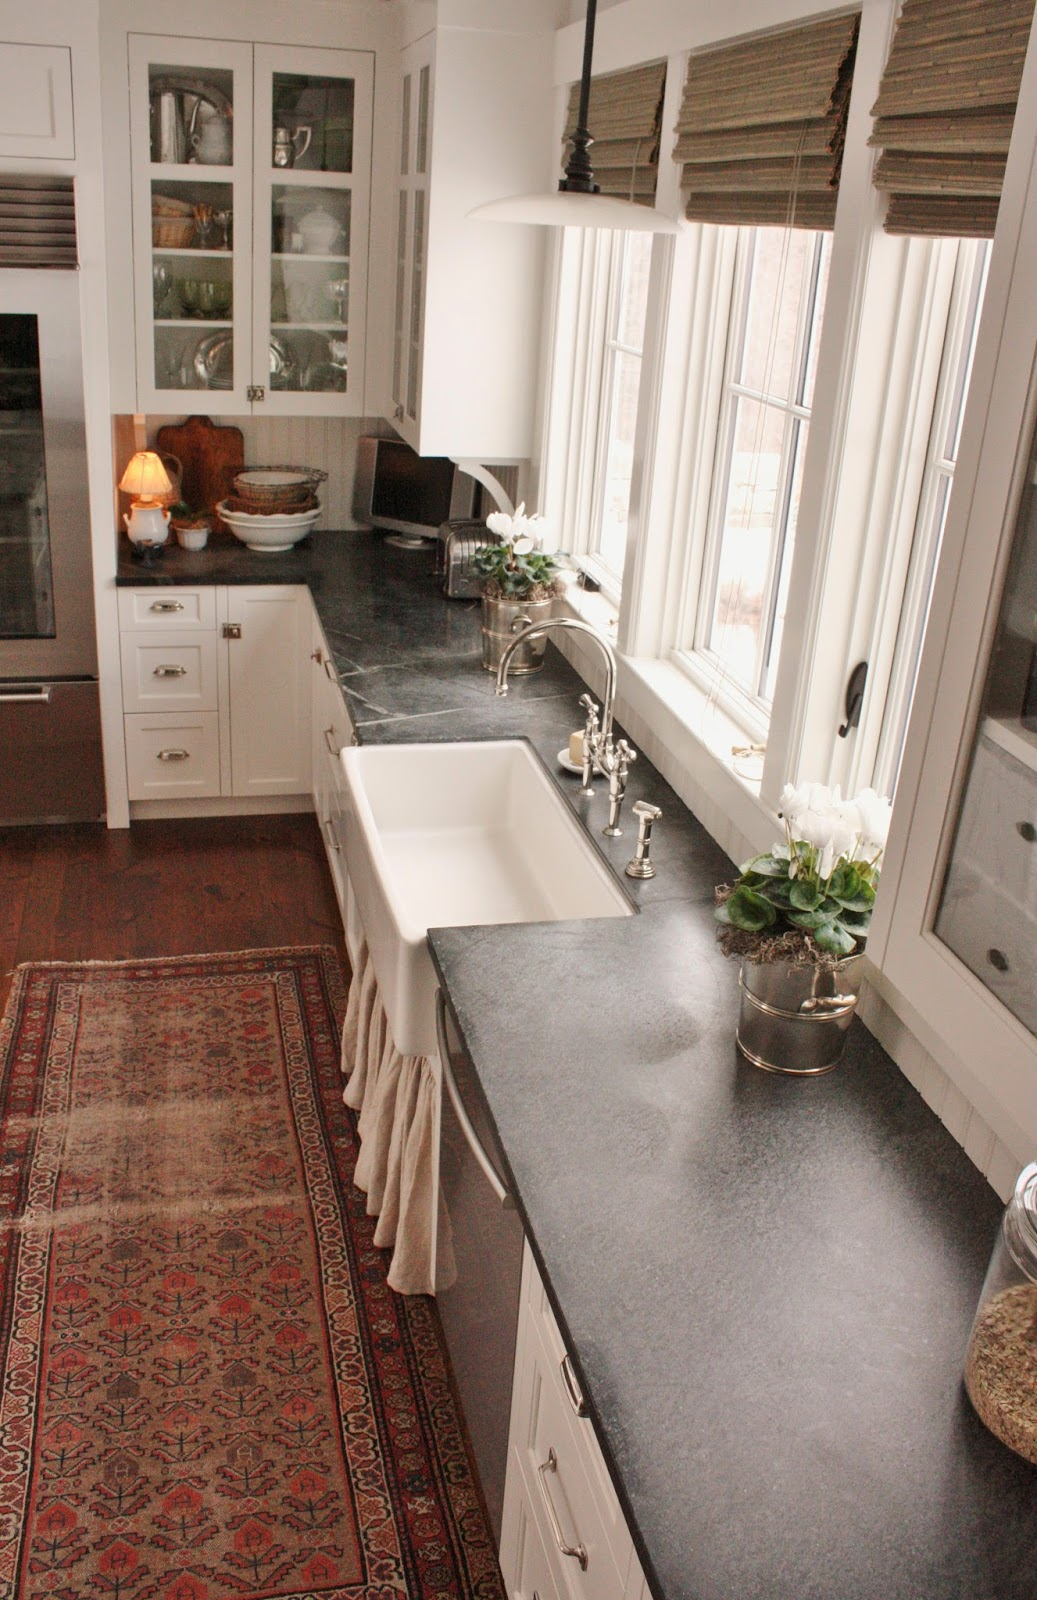 Soapstone Kitchen Counters Painting Cabinets For The Love Of A House First Lets Talk About And Just What It Is